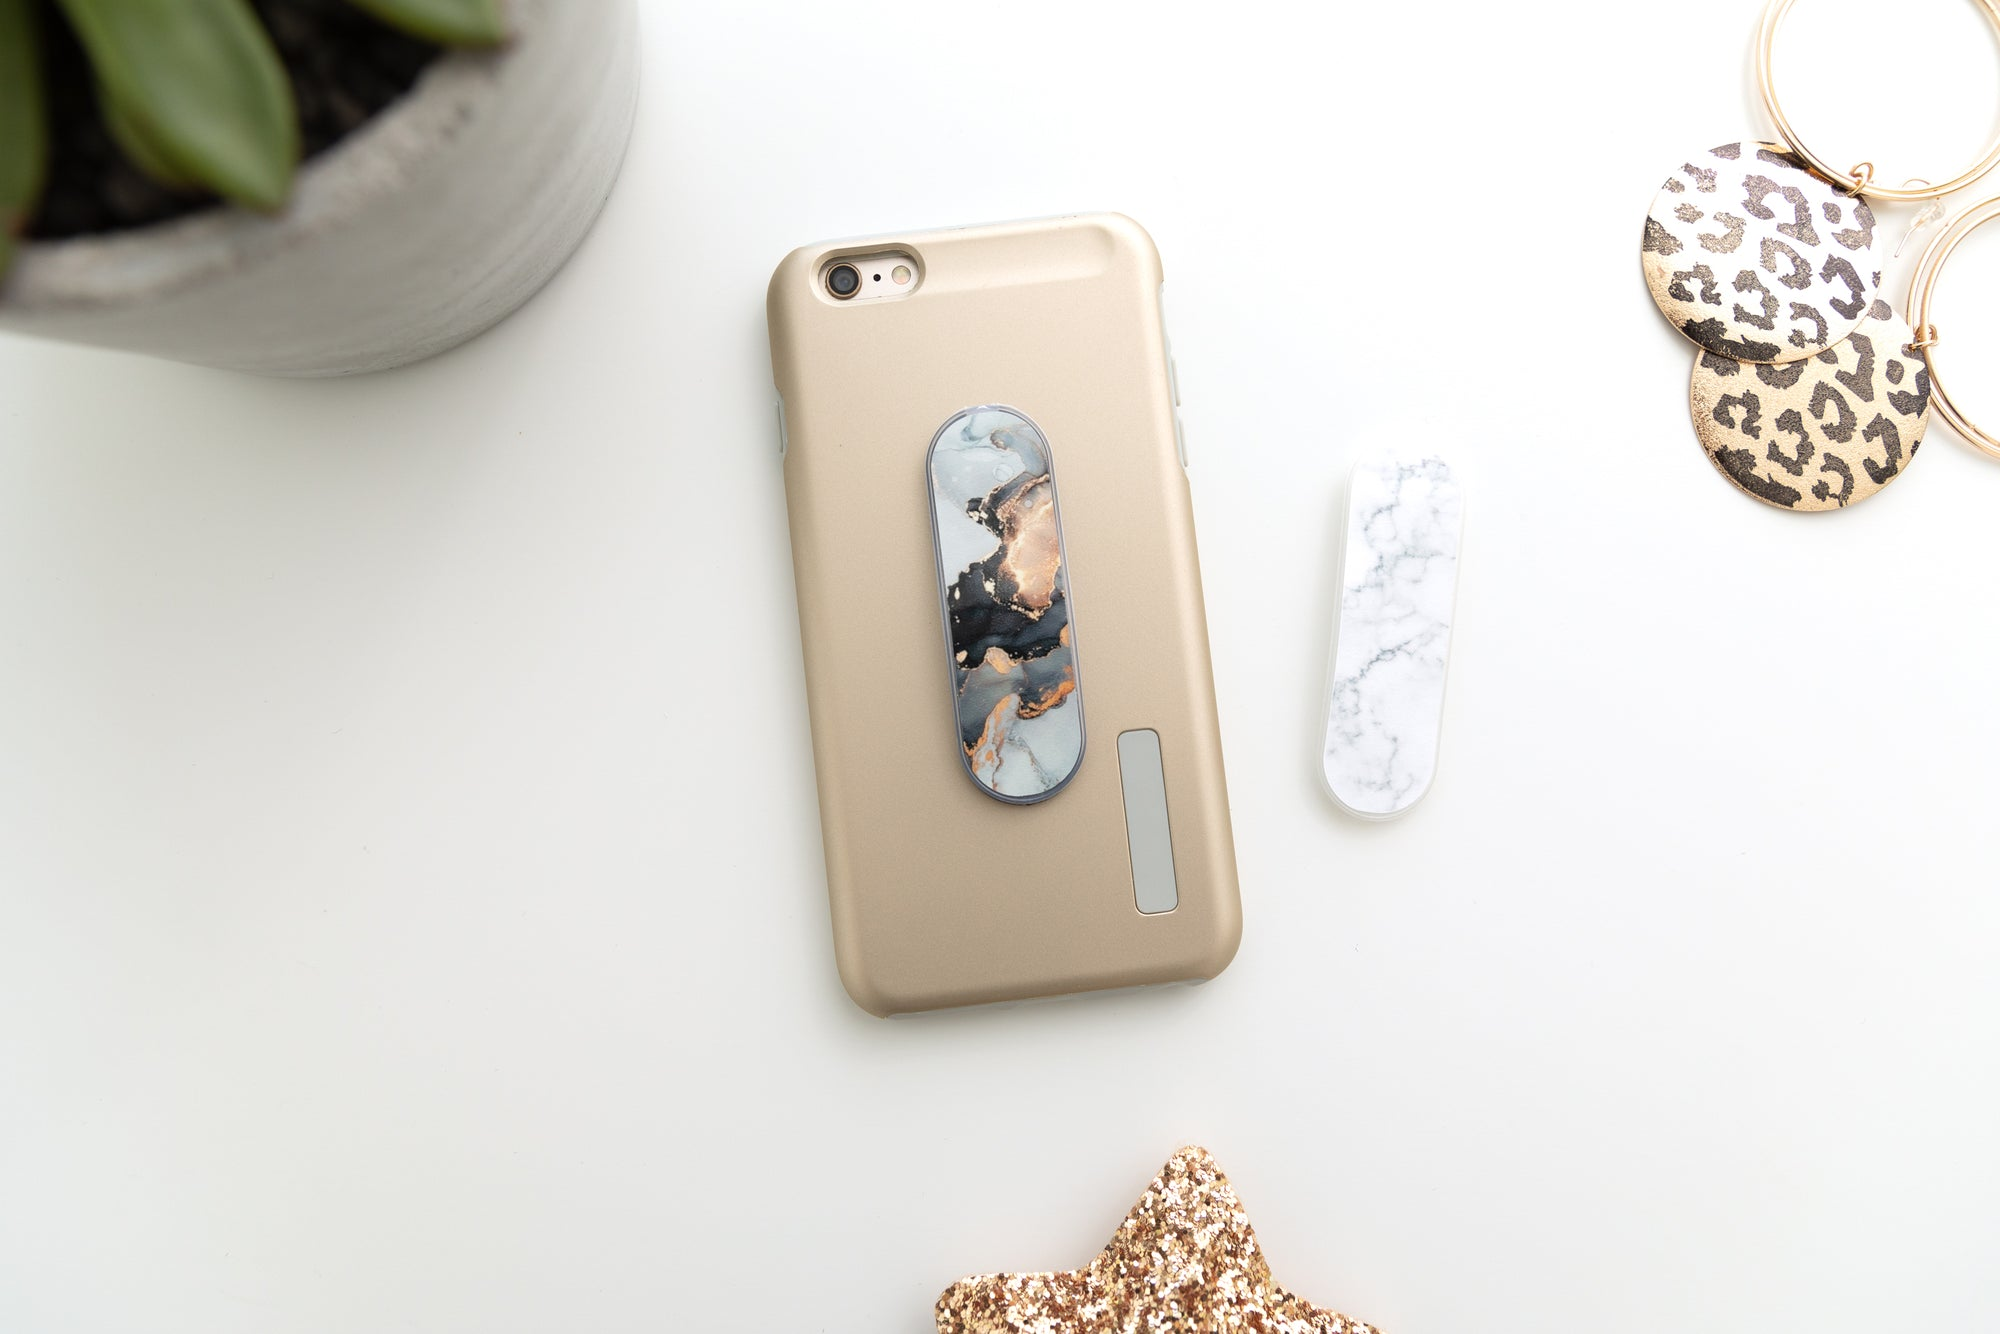 Yubiloop phone accessory, don't drop your phone with this marble design phone loop. Apply to nearly any cell phone or cell phone case. Stylish and fashionable designs are interchangable to match any mood our outfit. Each purchase also donates to charity.